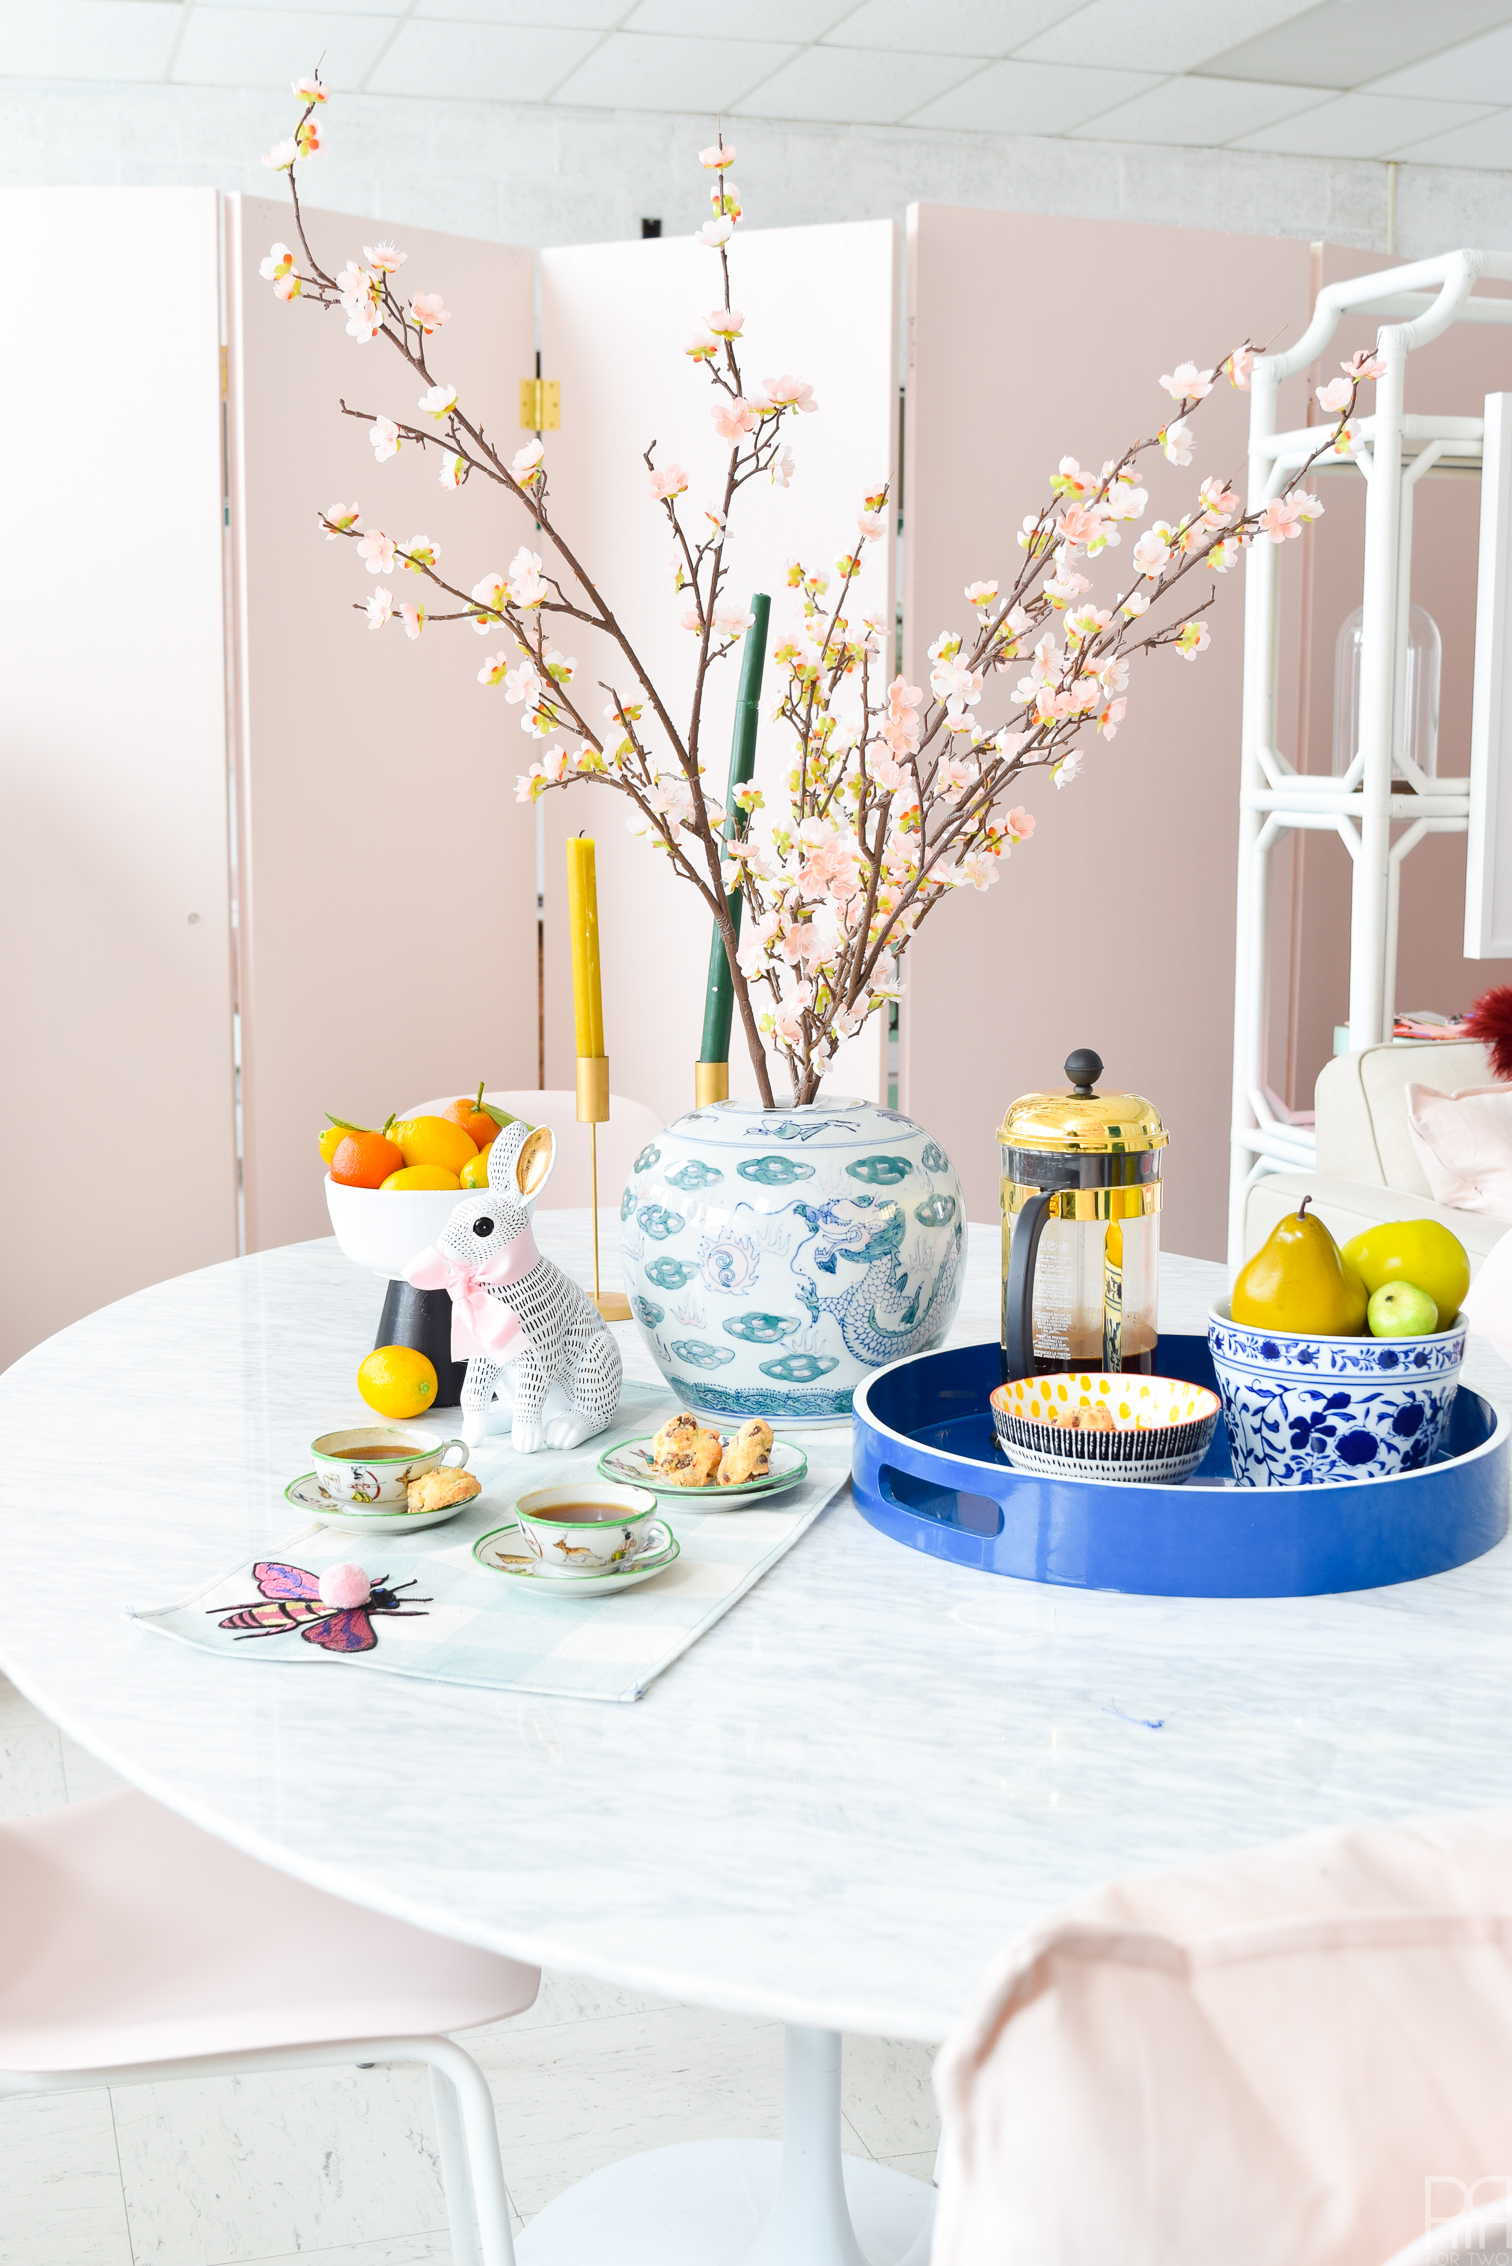 Eclectic Spring & Easter Decor means lots of bunnies with bowties, cherry blossoms and beautiful blooms, as well as thrifted chinoiserie and vibrant accessories.